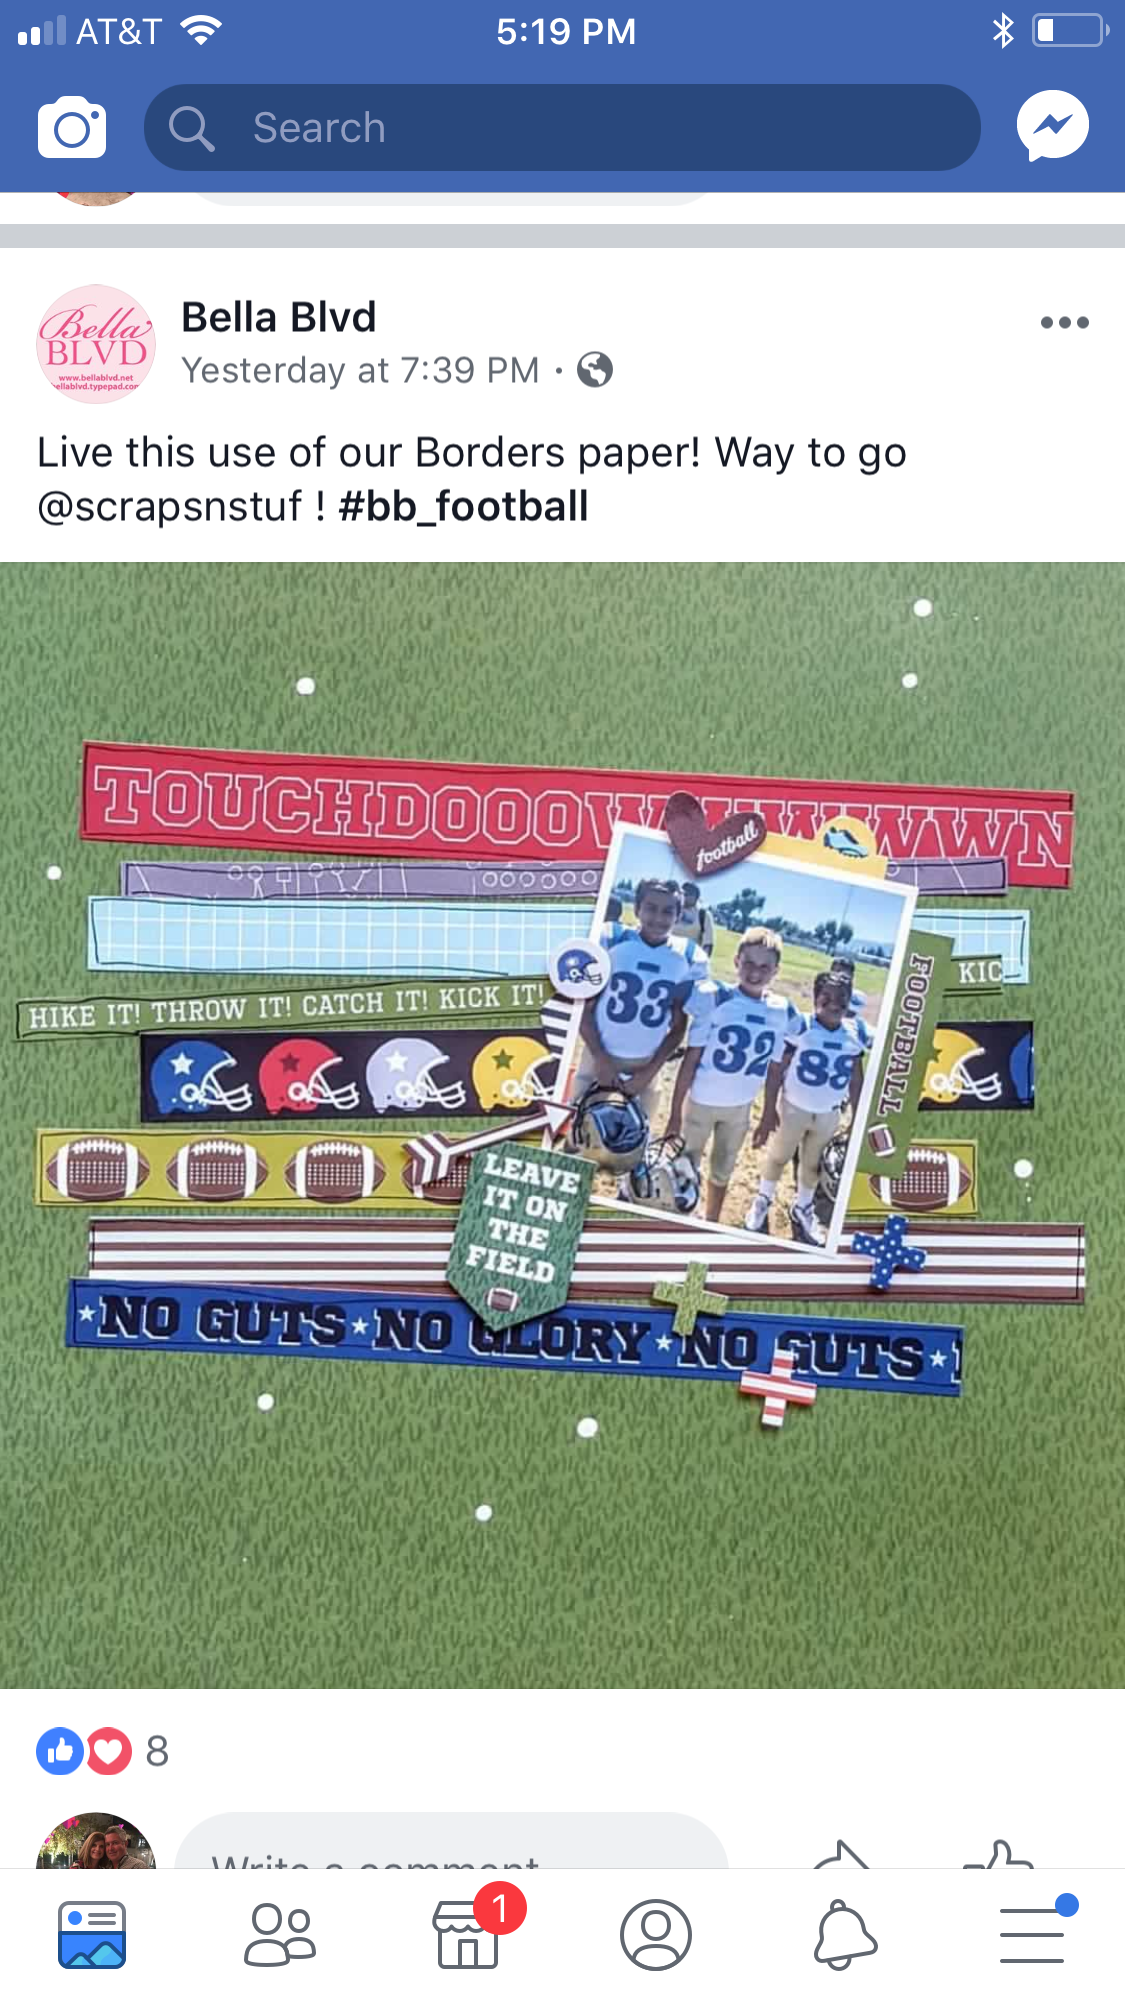 Pin By Trecca Howard On Scrapbook Borders For Paper Soccer Field Us Border